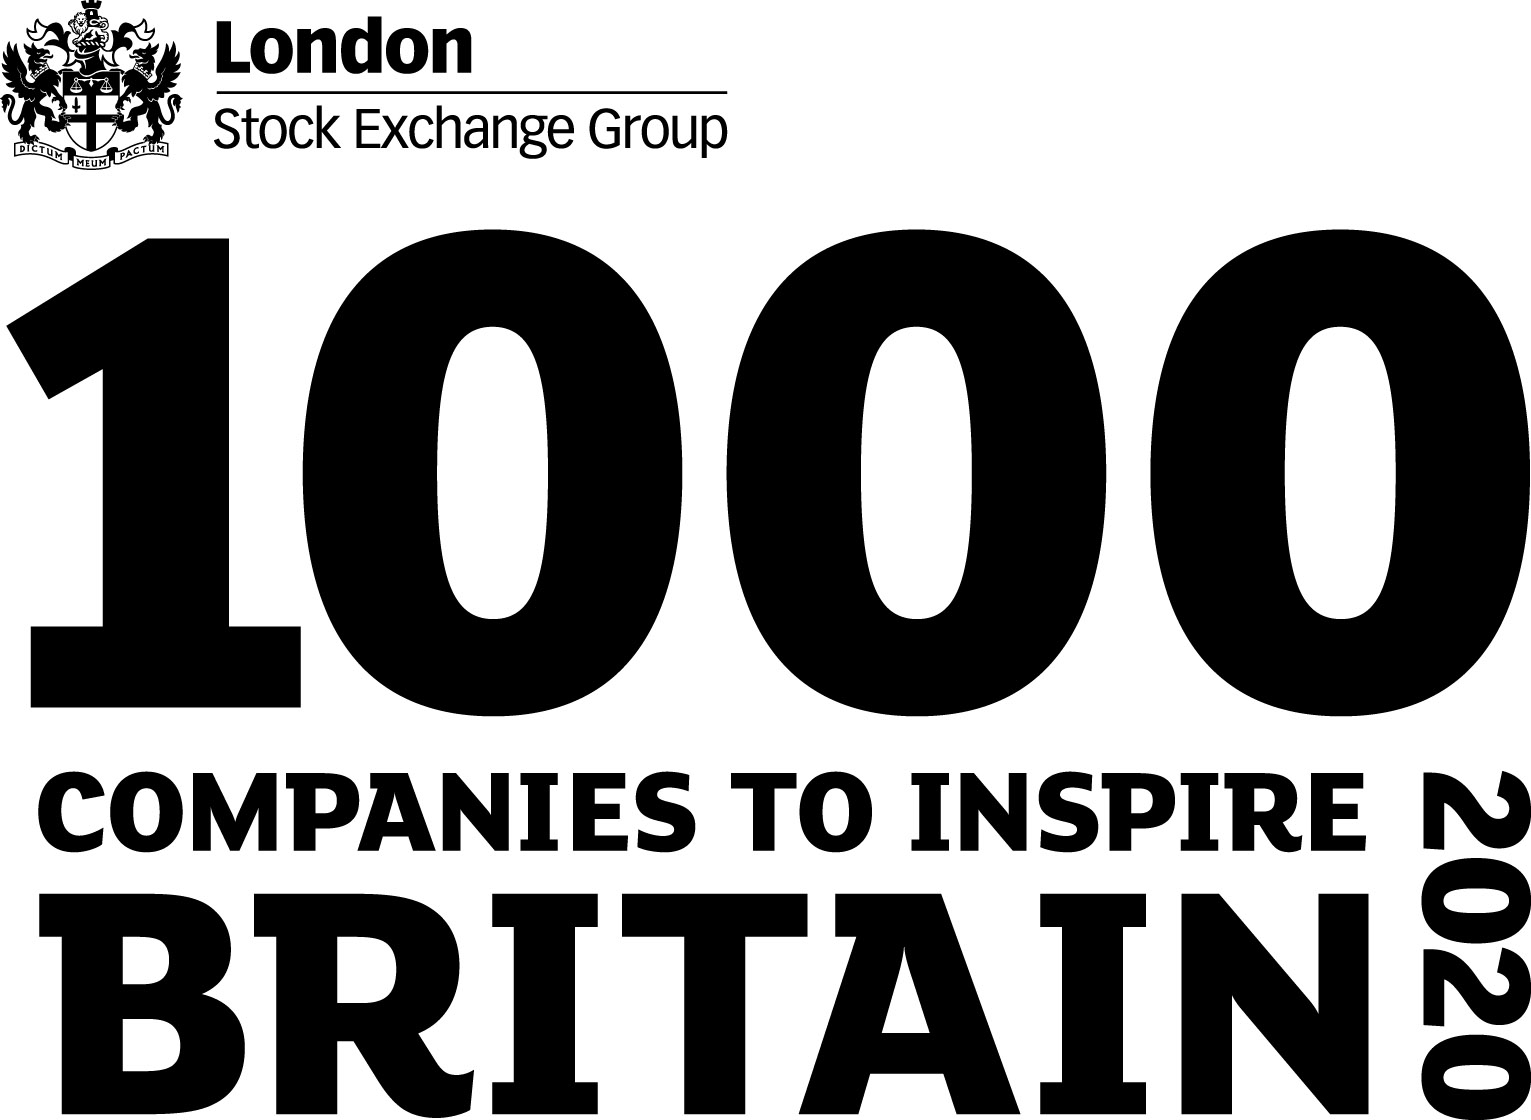 InXpress is one of 1000 Companies to Inspire Britain